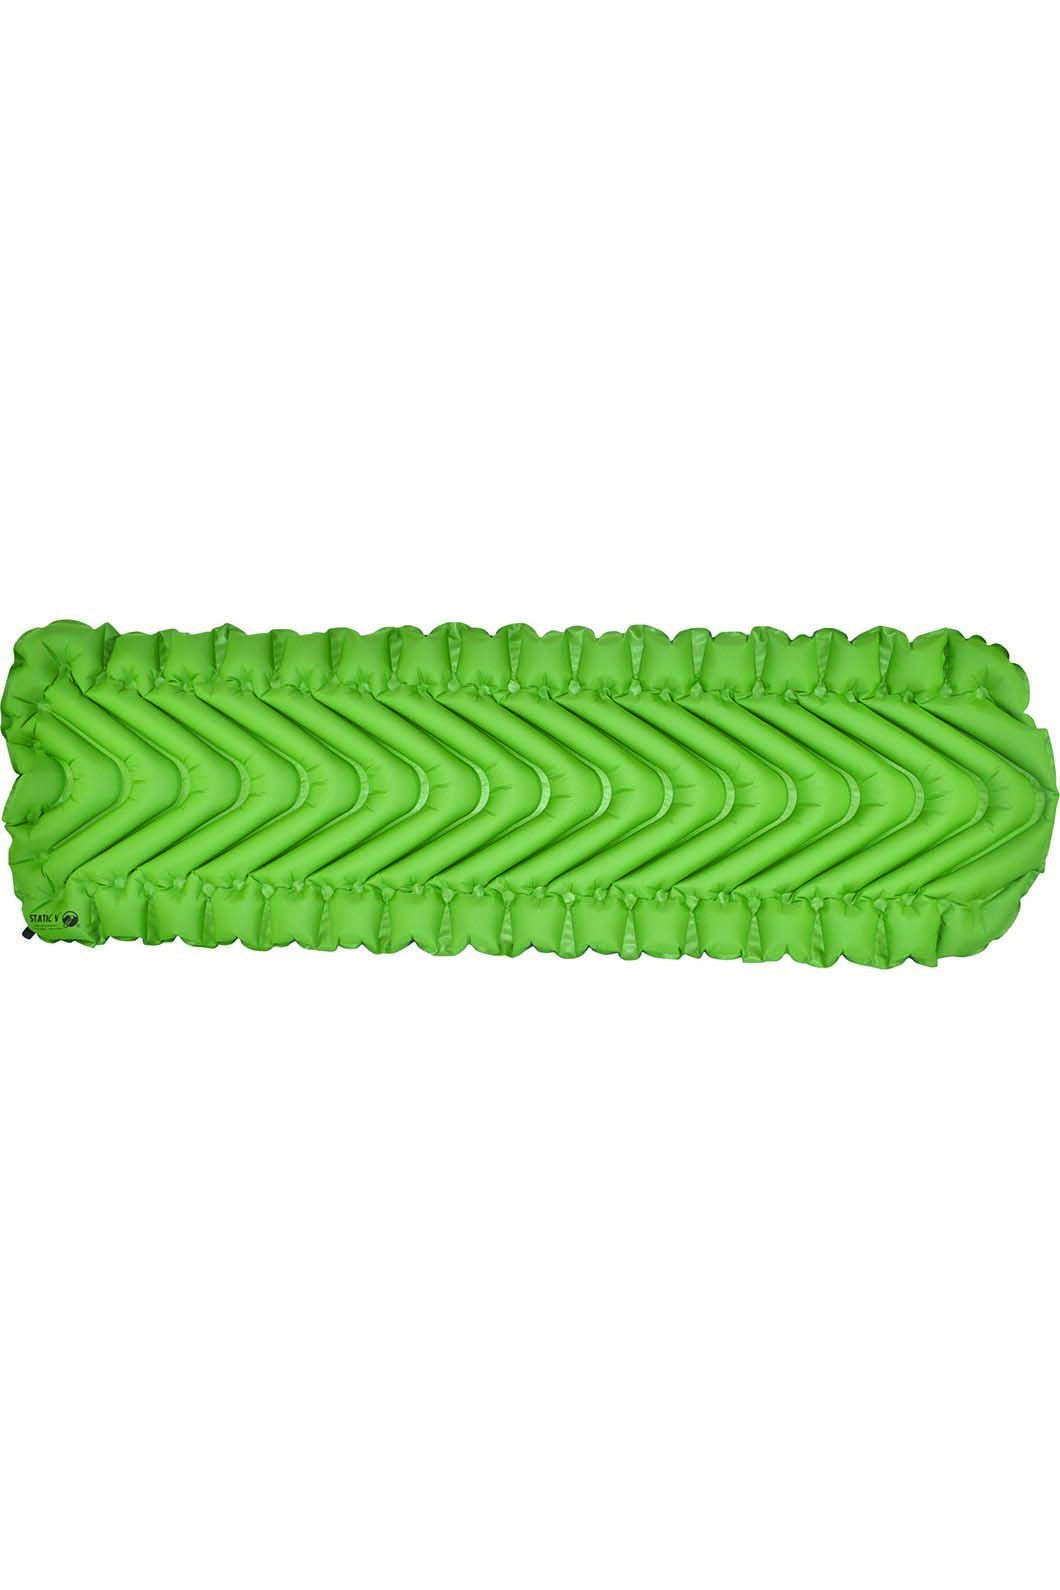 Klymit Static V Inflatable Mat, None, hi-res